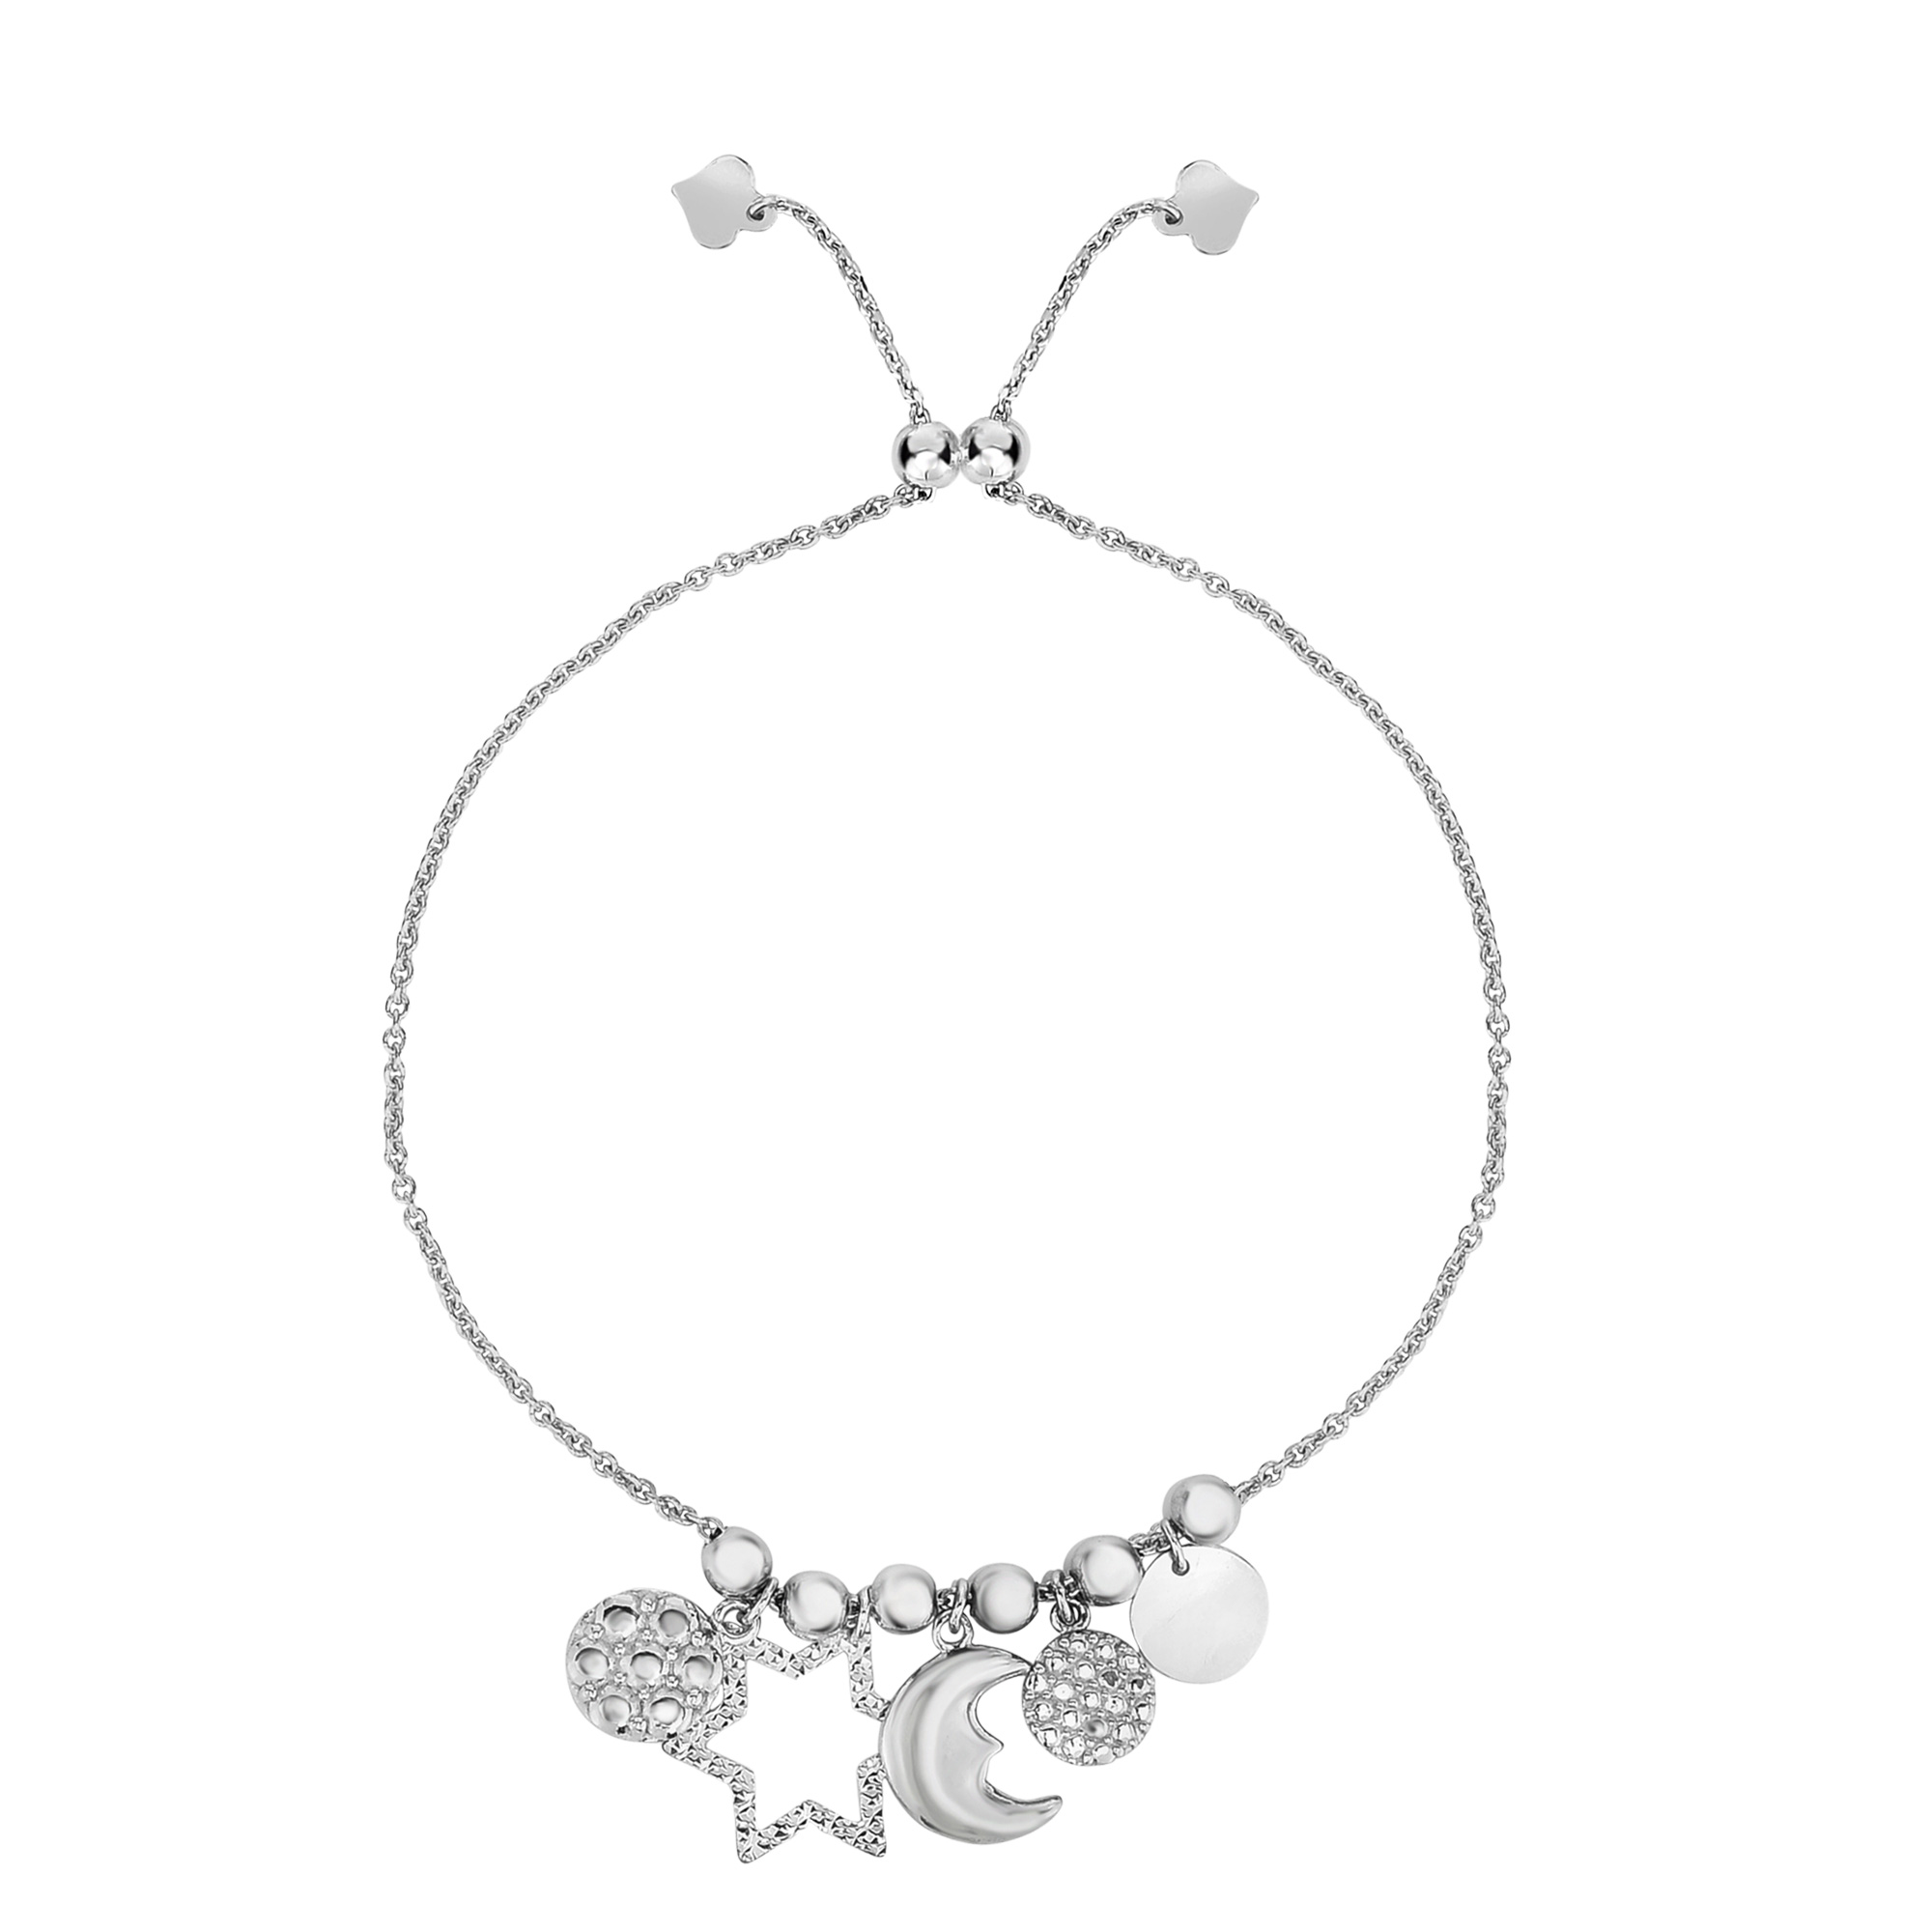 Sterling Silver Star Moon And Disc Charm Elements Adjustable Bolo Friendship Bracelet , 9.25  Designed for today's fast-moving, contemporary woman, the Friendship bracelets are smart, stylish and easy to wear. Meticulously executed in high quality Rhodium plated sterling silver, these iconic bracelets are easily adjusted to fit any wrist. The Adjustable sliding closure allows you to go from 9.25 inches length to as small as allowed by the design.  Each unique style of our Friendship collection looks beautiful worn as one piece alone or stacked with multiple styles for a layered and modern look. The bracelet comes in an elegant jewelry gift box, perfect for any gift giving occasion.